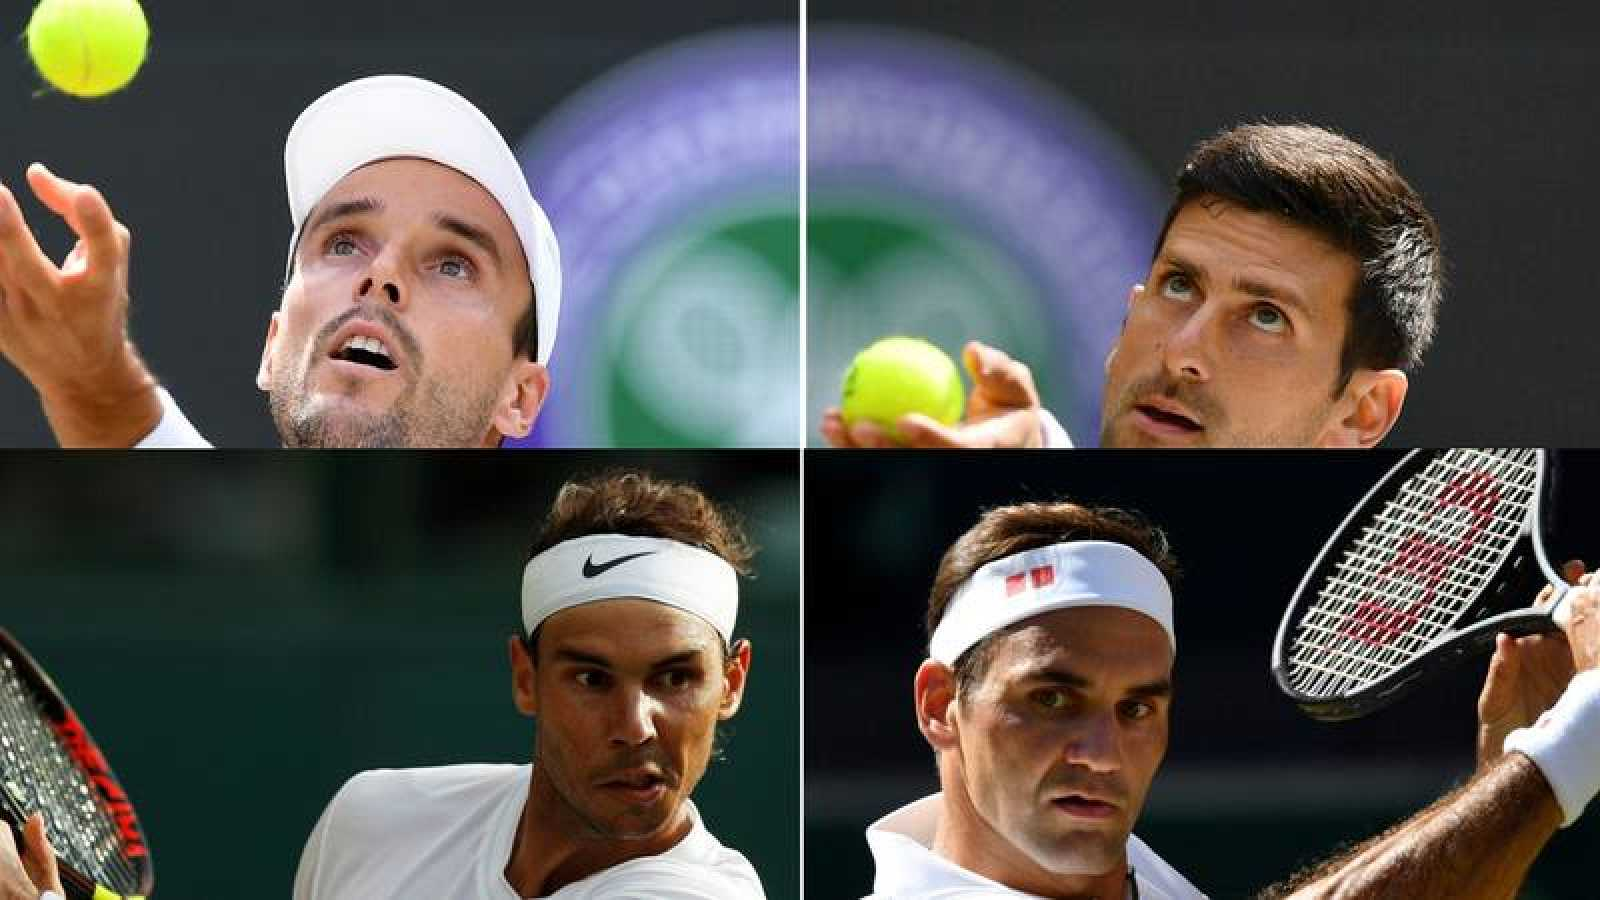 Bautista y Nadal desafían al 'establishment' en Wimbledon